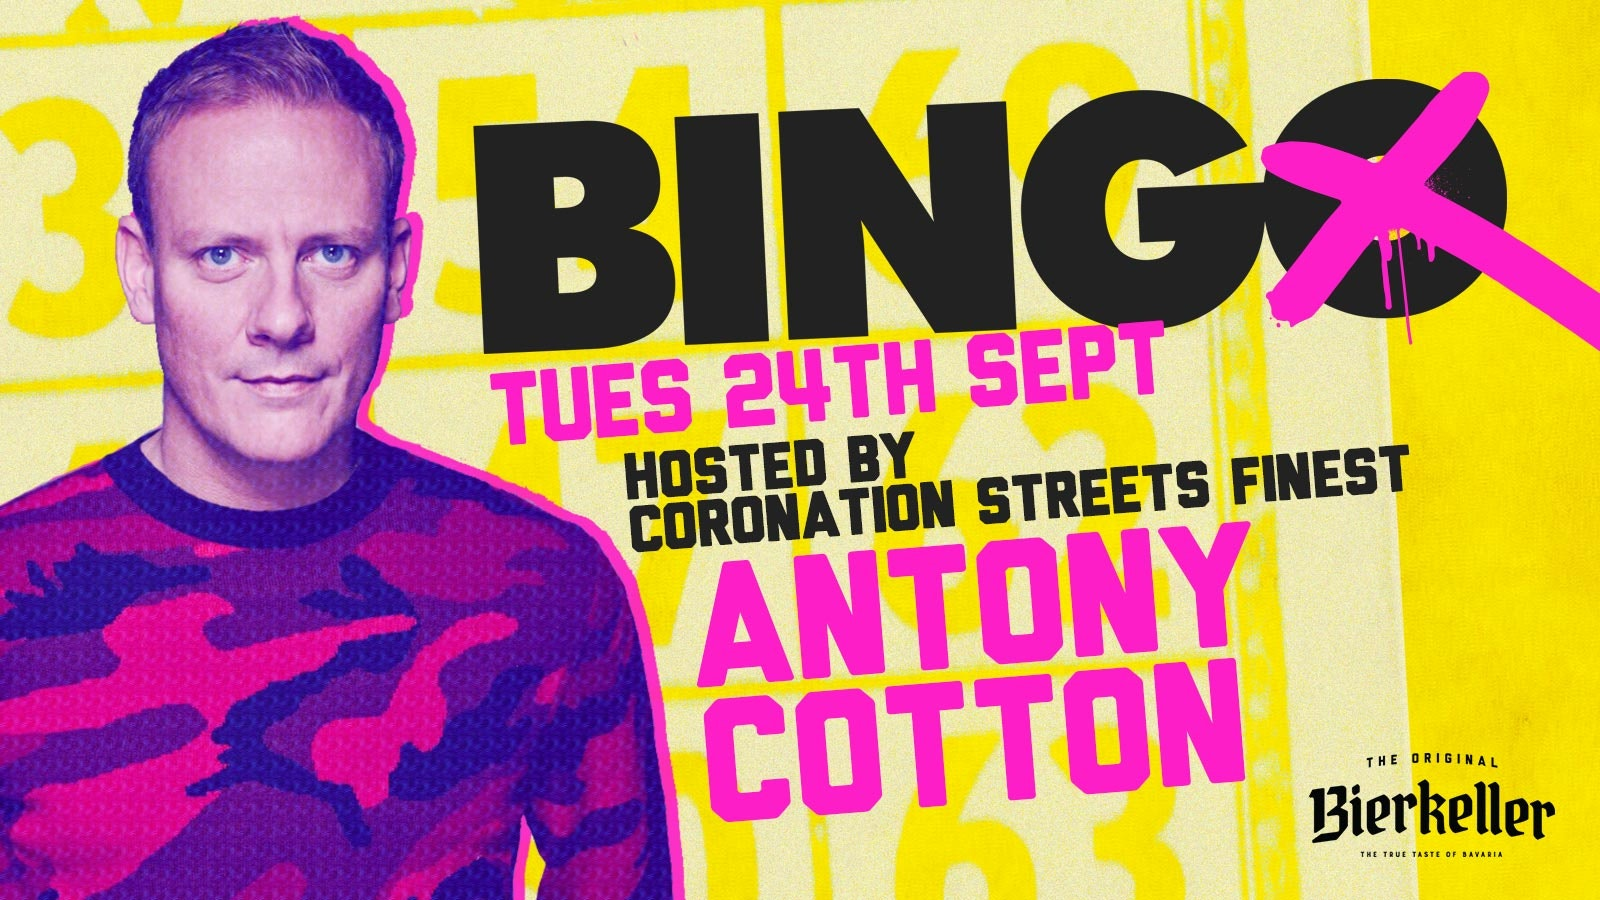 Bingo Hosted By Antony Cotton